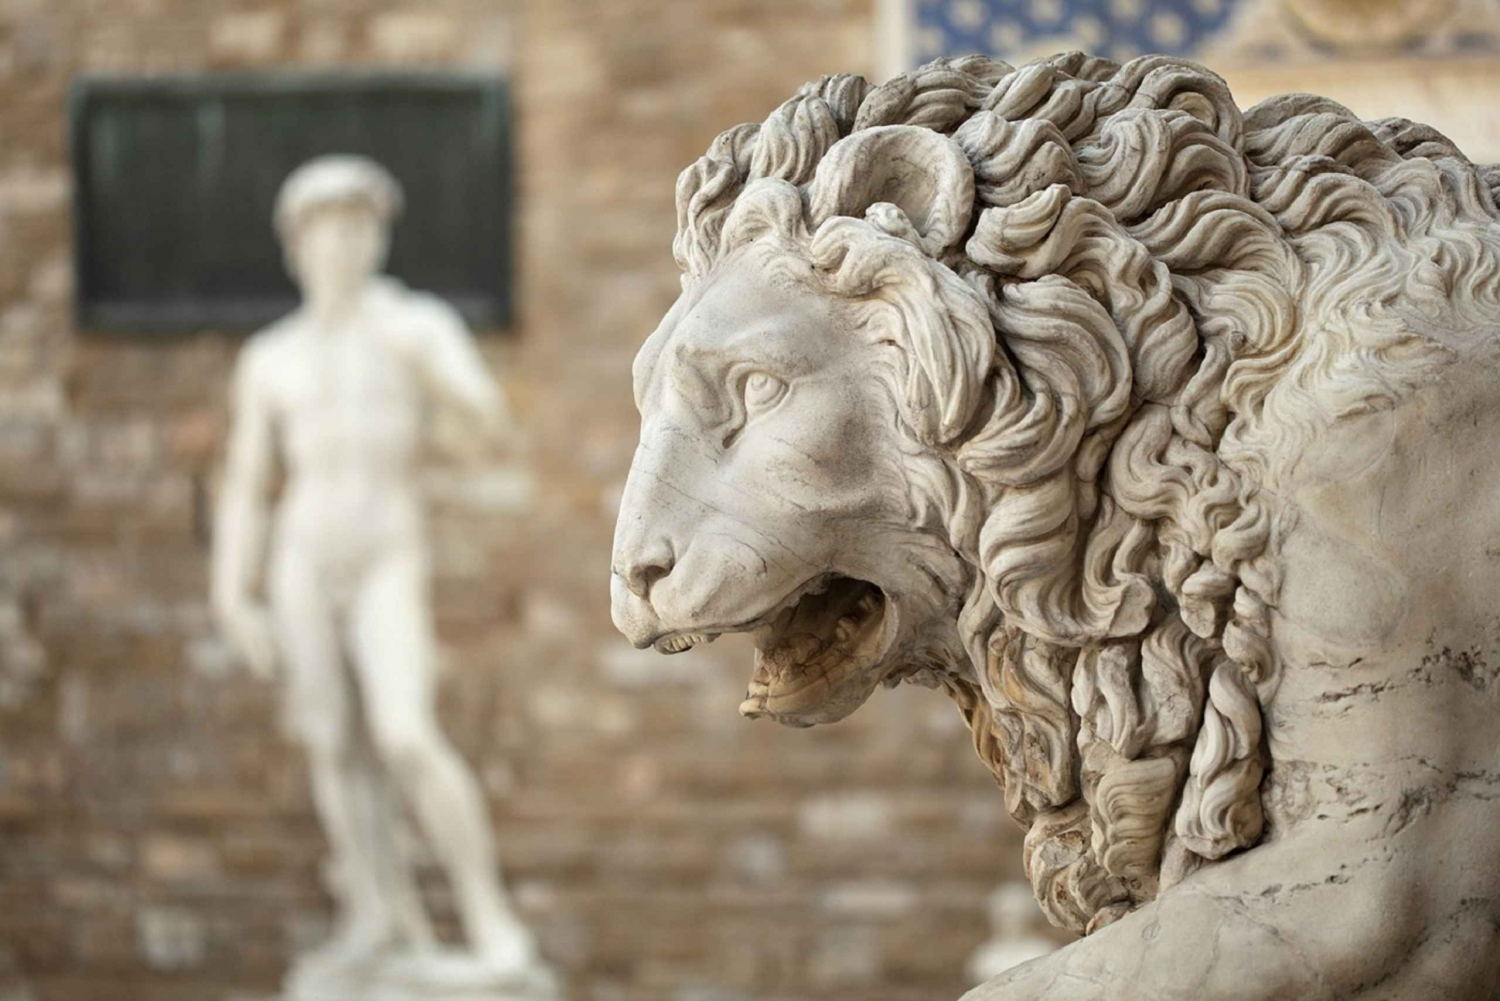 Accademia Gallery & Walking Tour of Florence